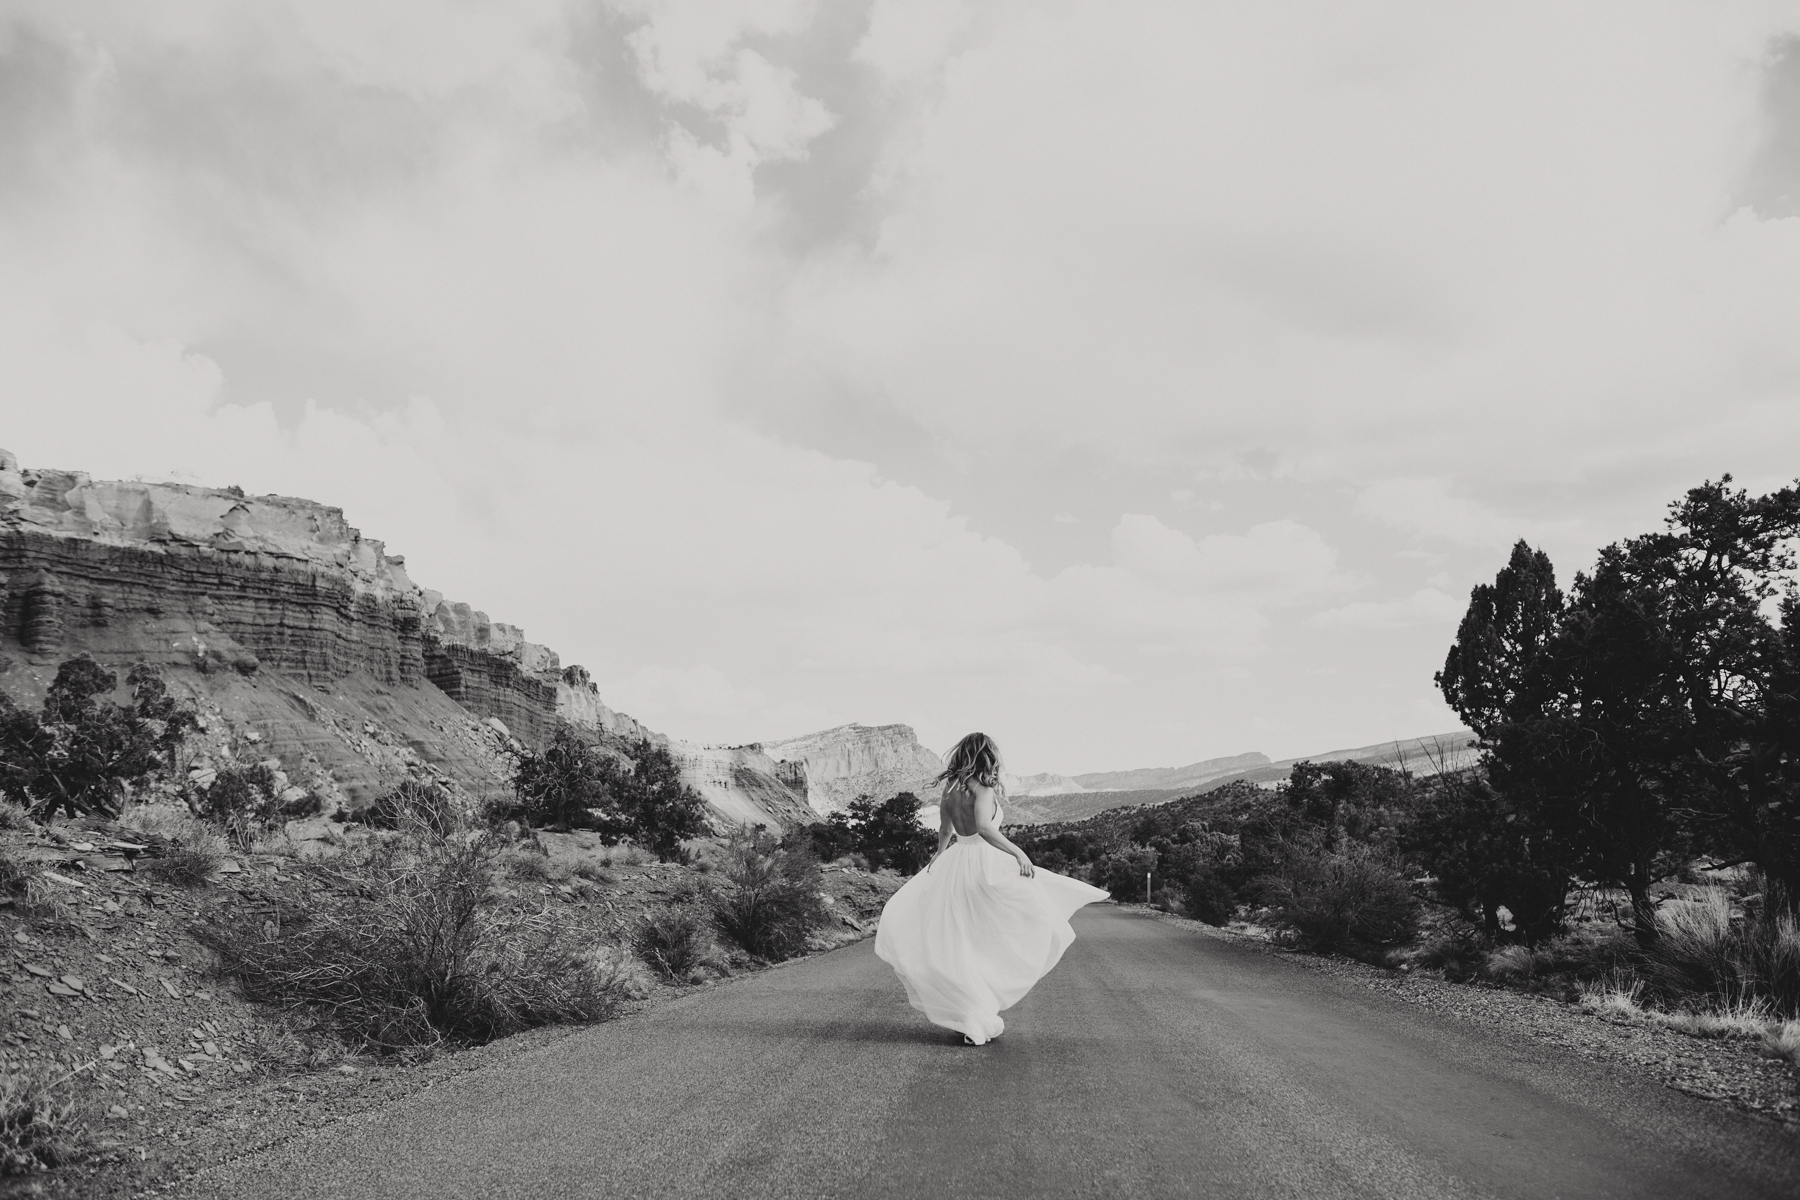 Bride spinning in middle of road wearing her wedding dress